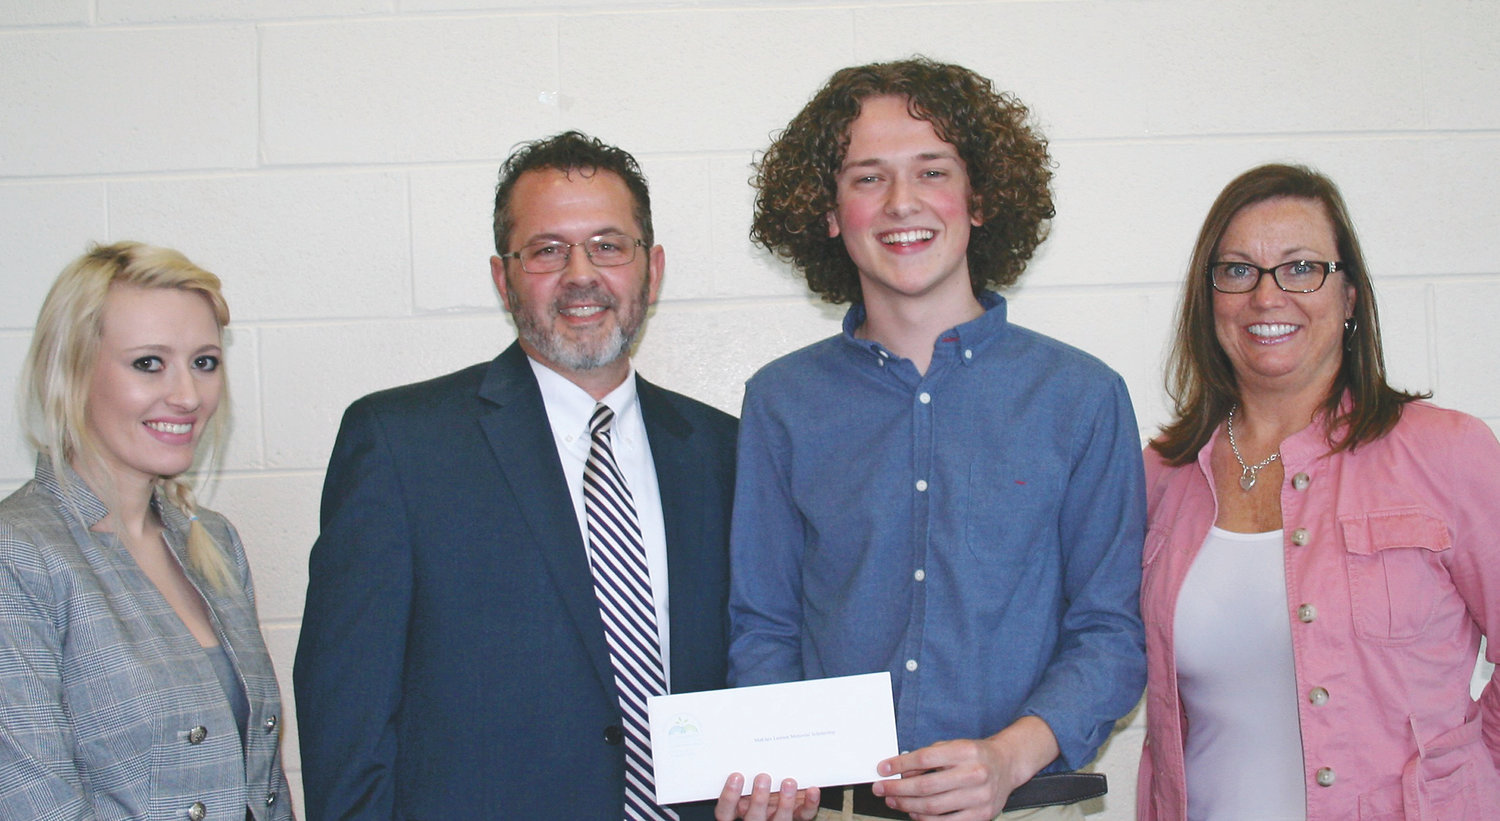 Luke Lee recipient of first Lawson scholarship | The